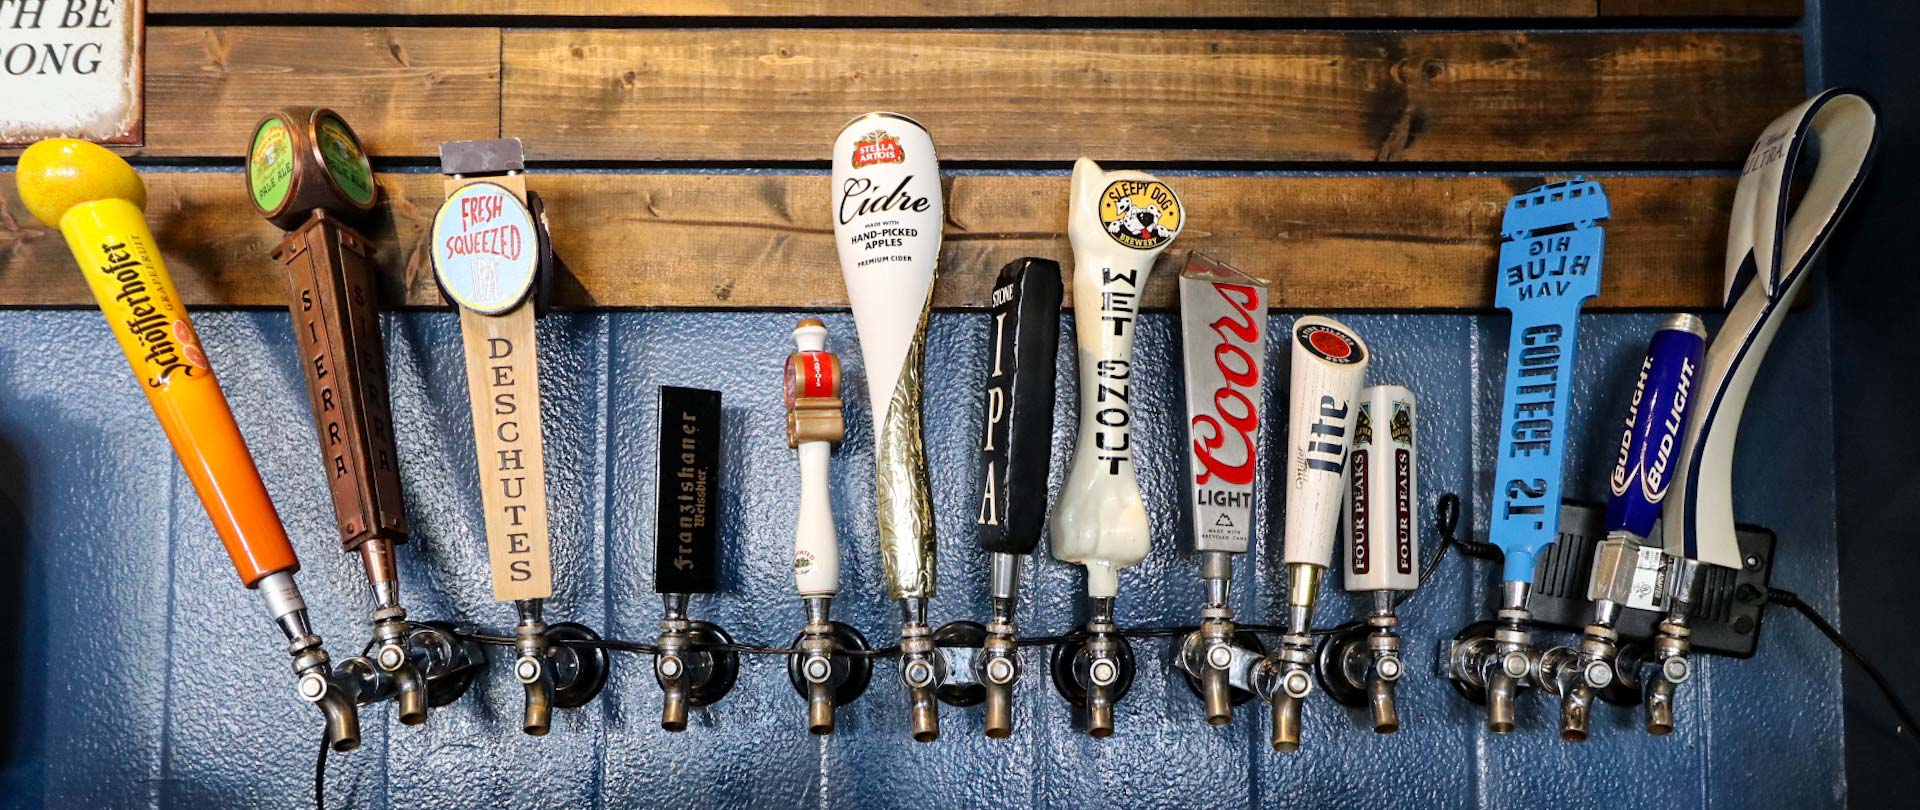 14 beer taps at Dirty Blonde Tavern